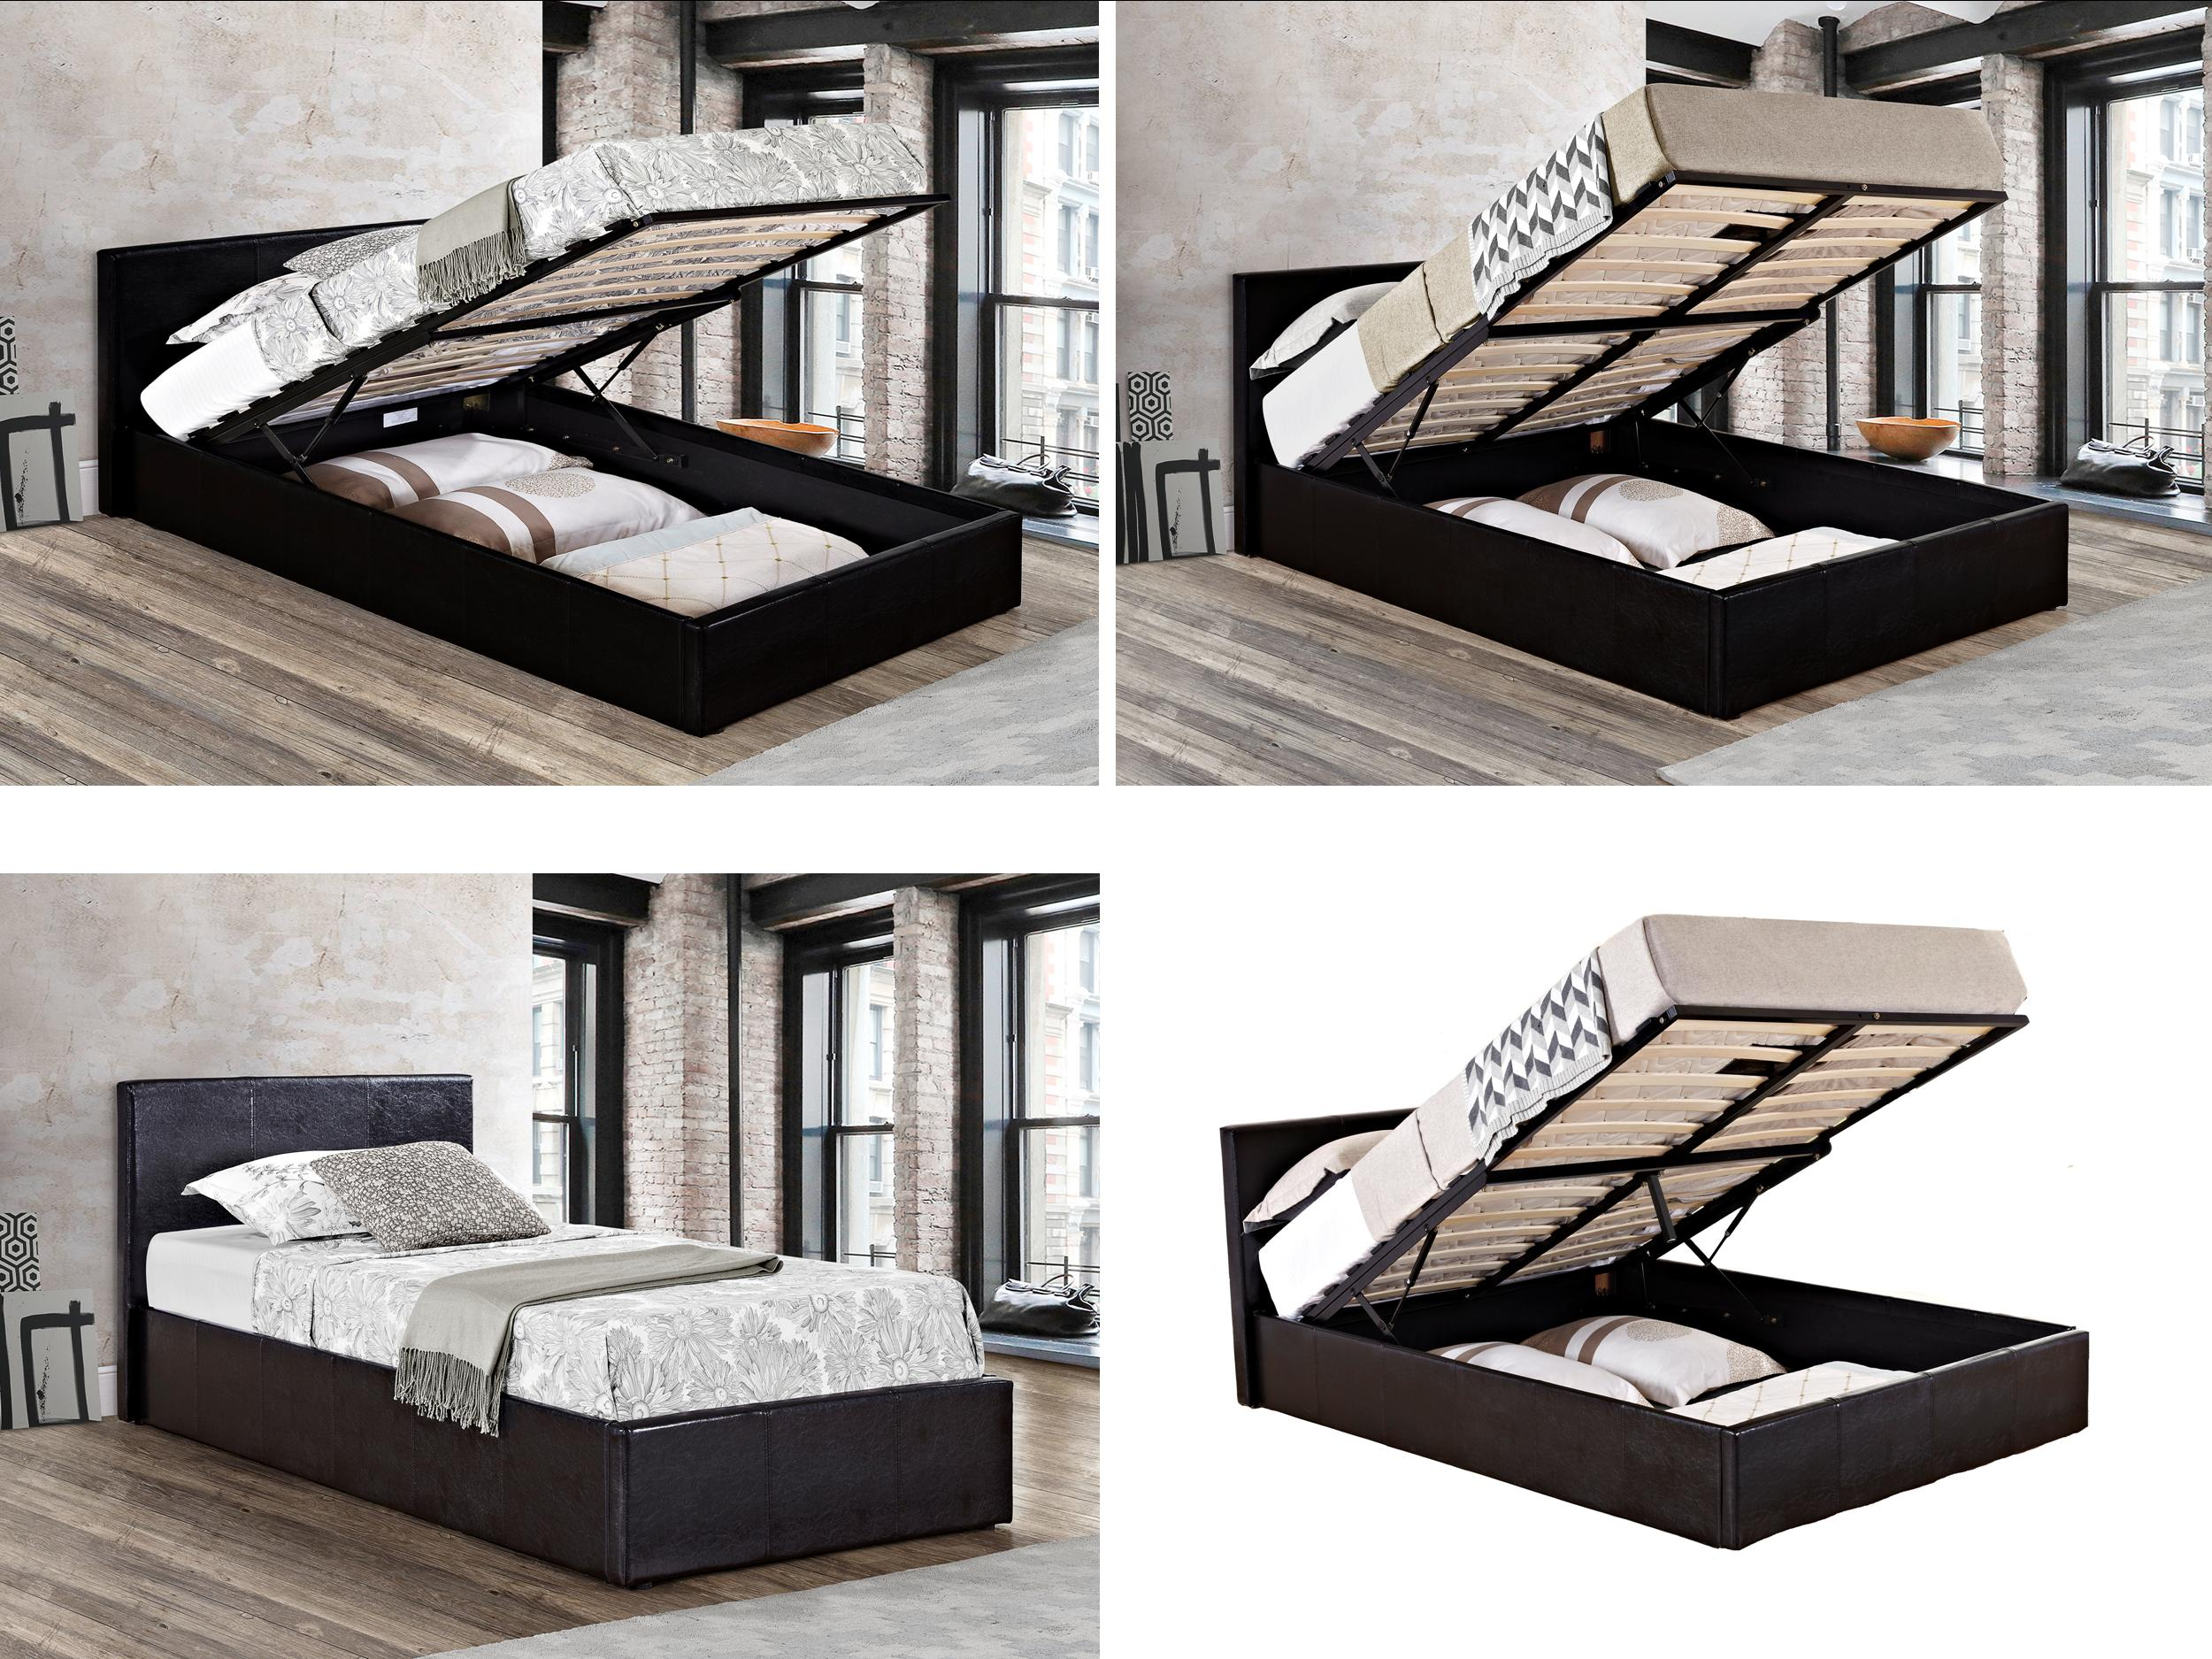 Birlea Ottoman Bed Gas Lift Up Storage Beds All Sizes Black Or